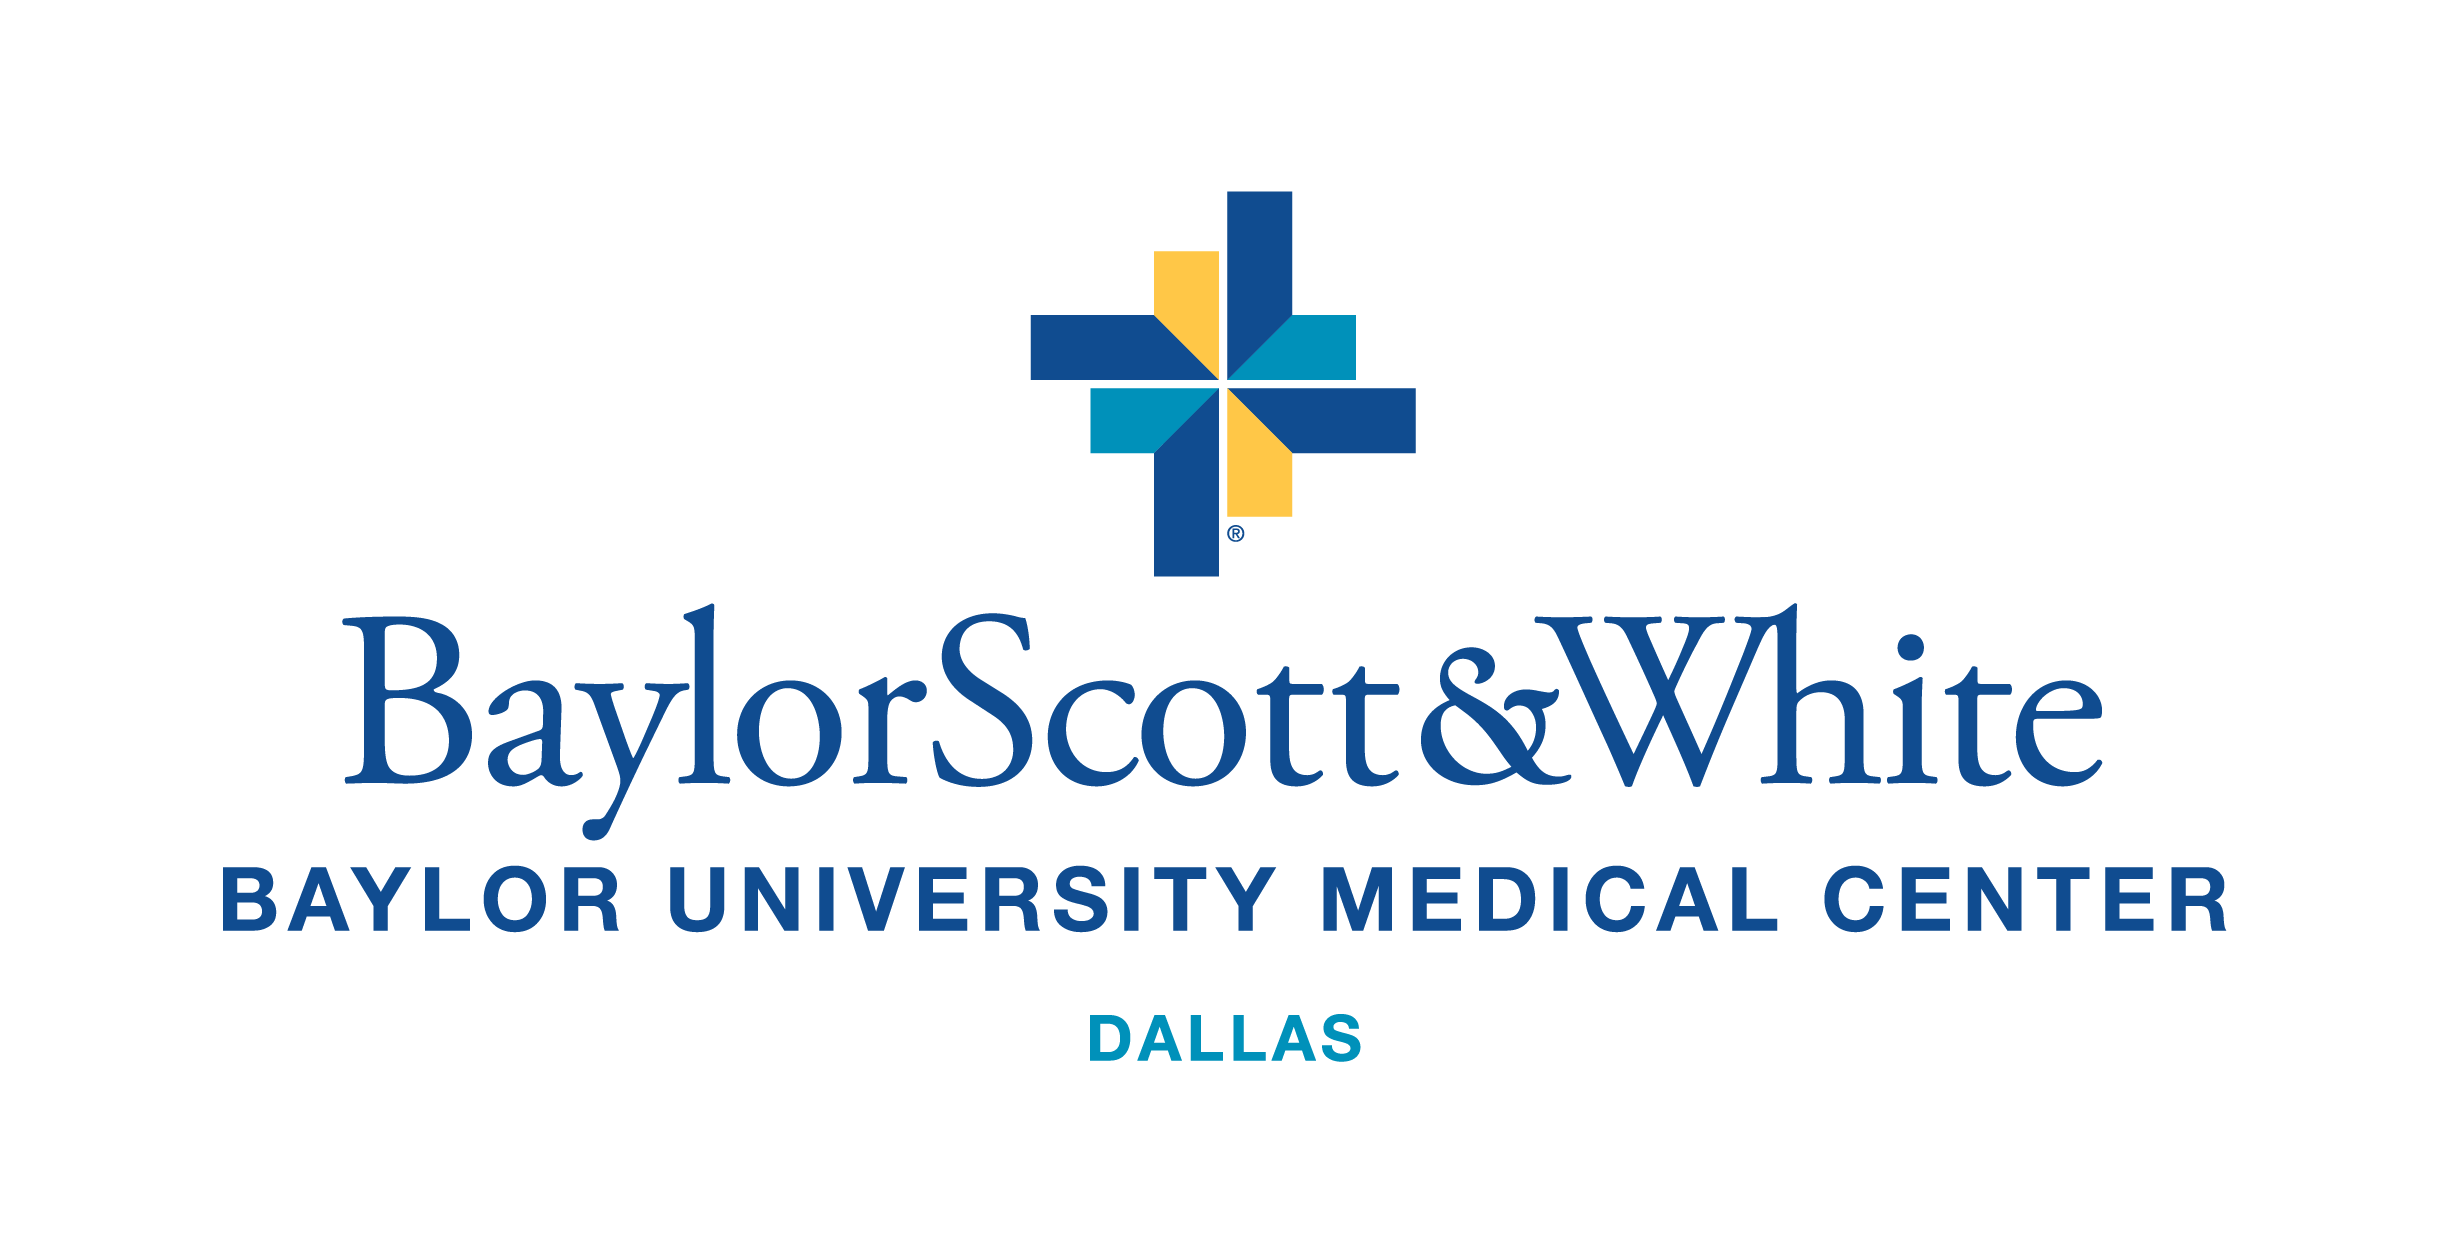 BSW Baylor University Medical Center Dallas_C_4C White Background (1).png